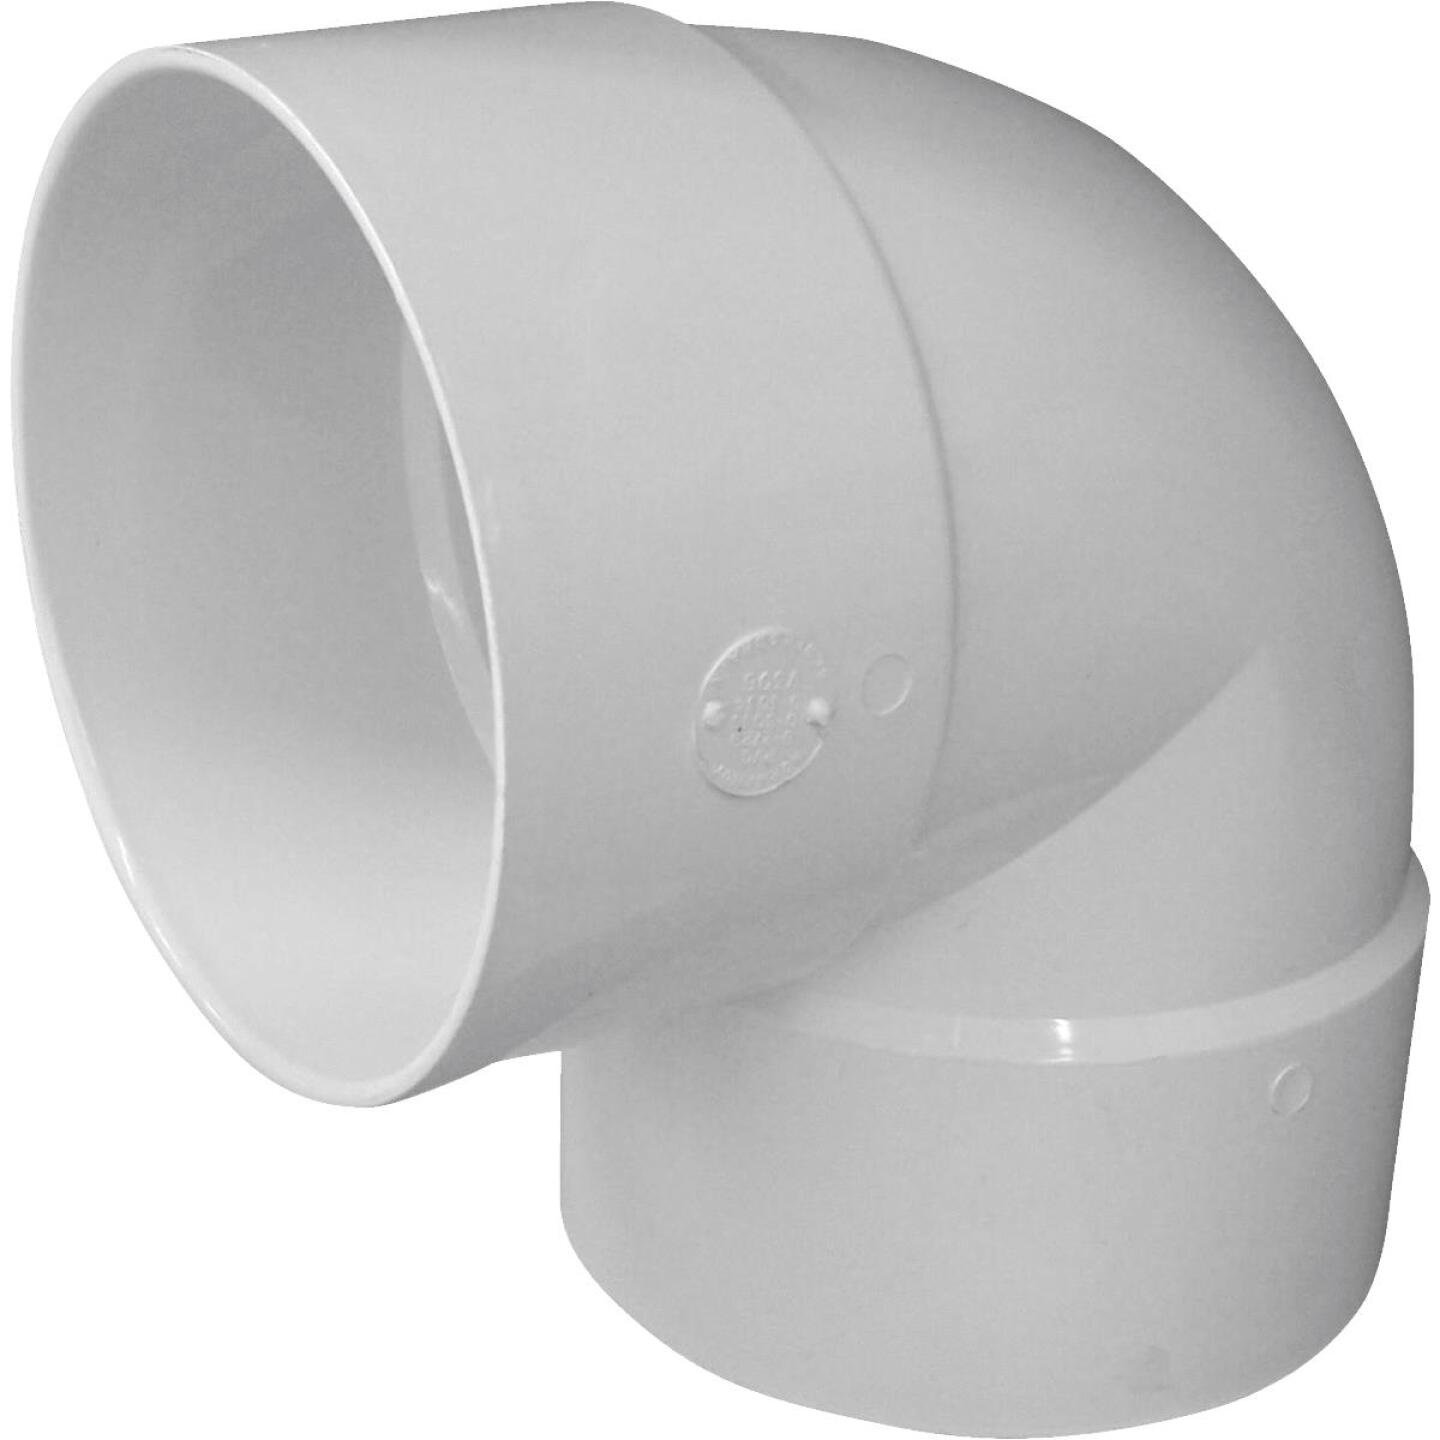 IPEX Canplas SDR 35 90 Degree 6 In. PVC Sewer and Drain Short Turn Elbow (1/4 Bend) Image 1